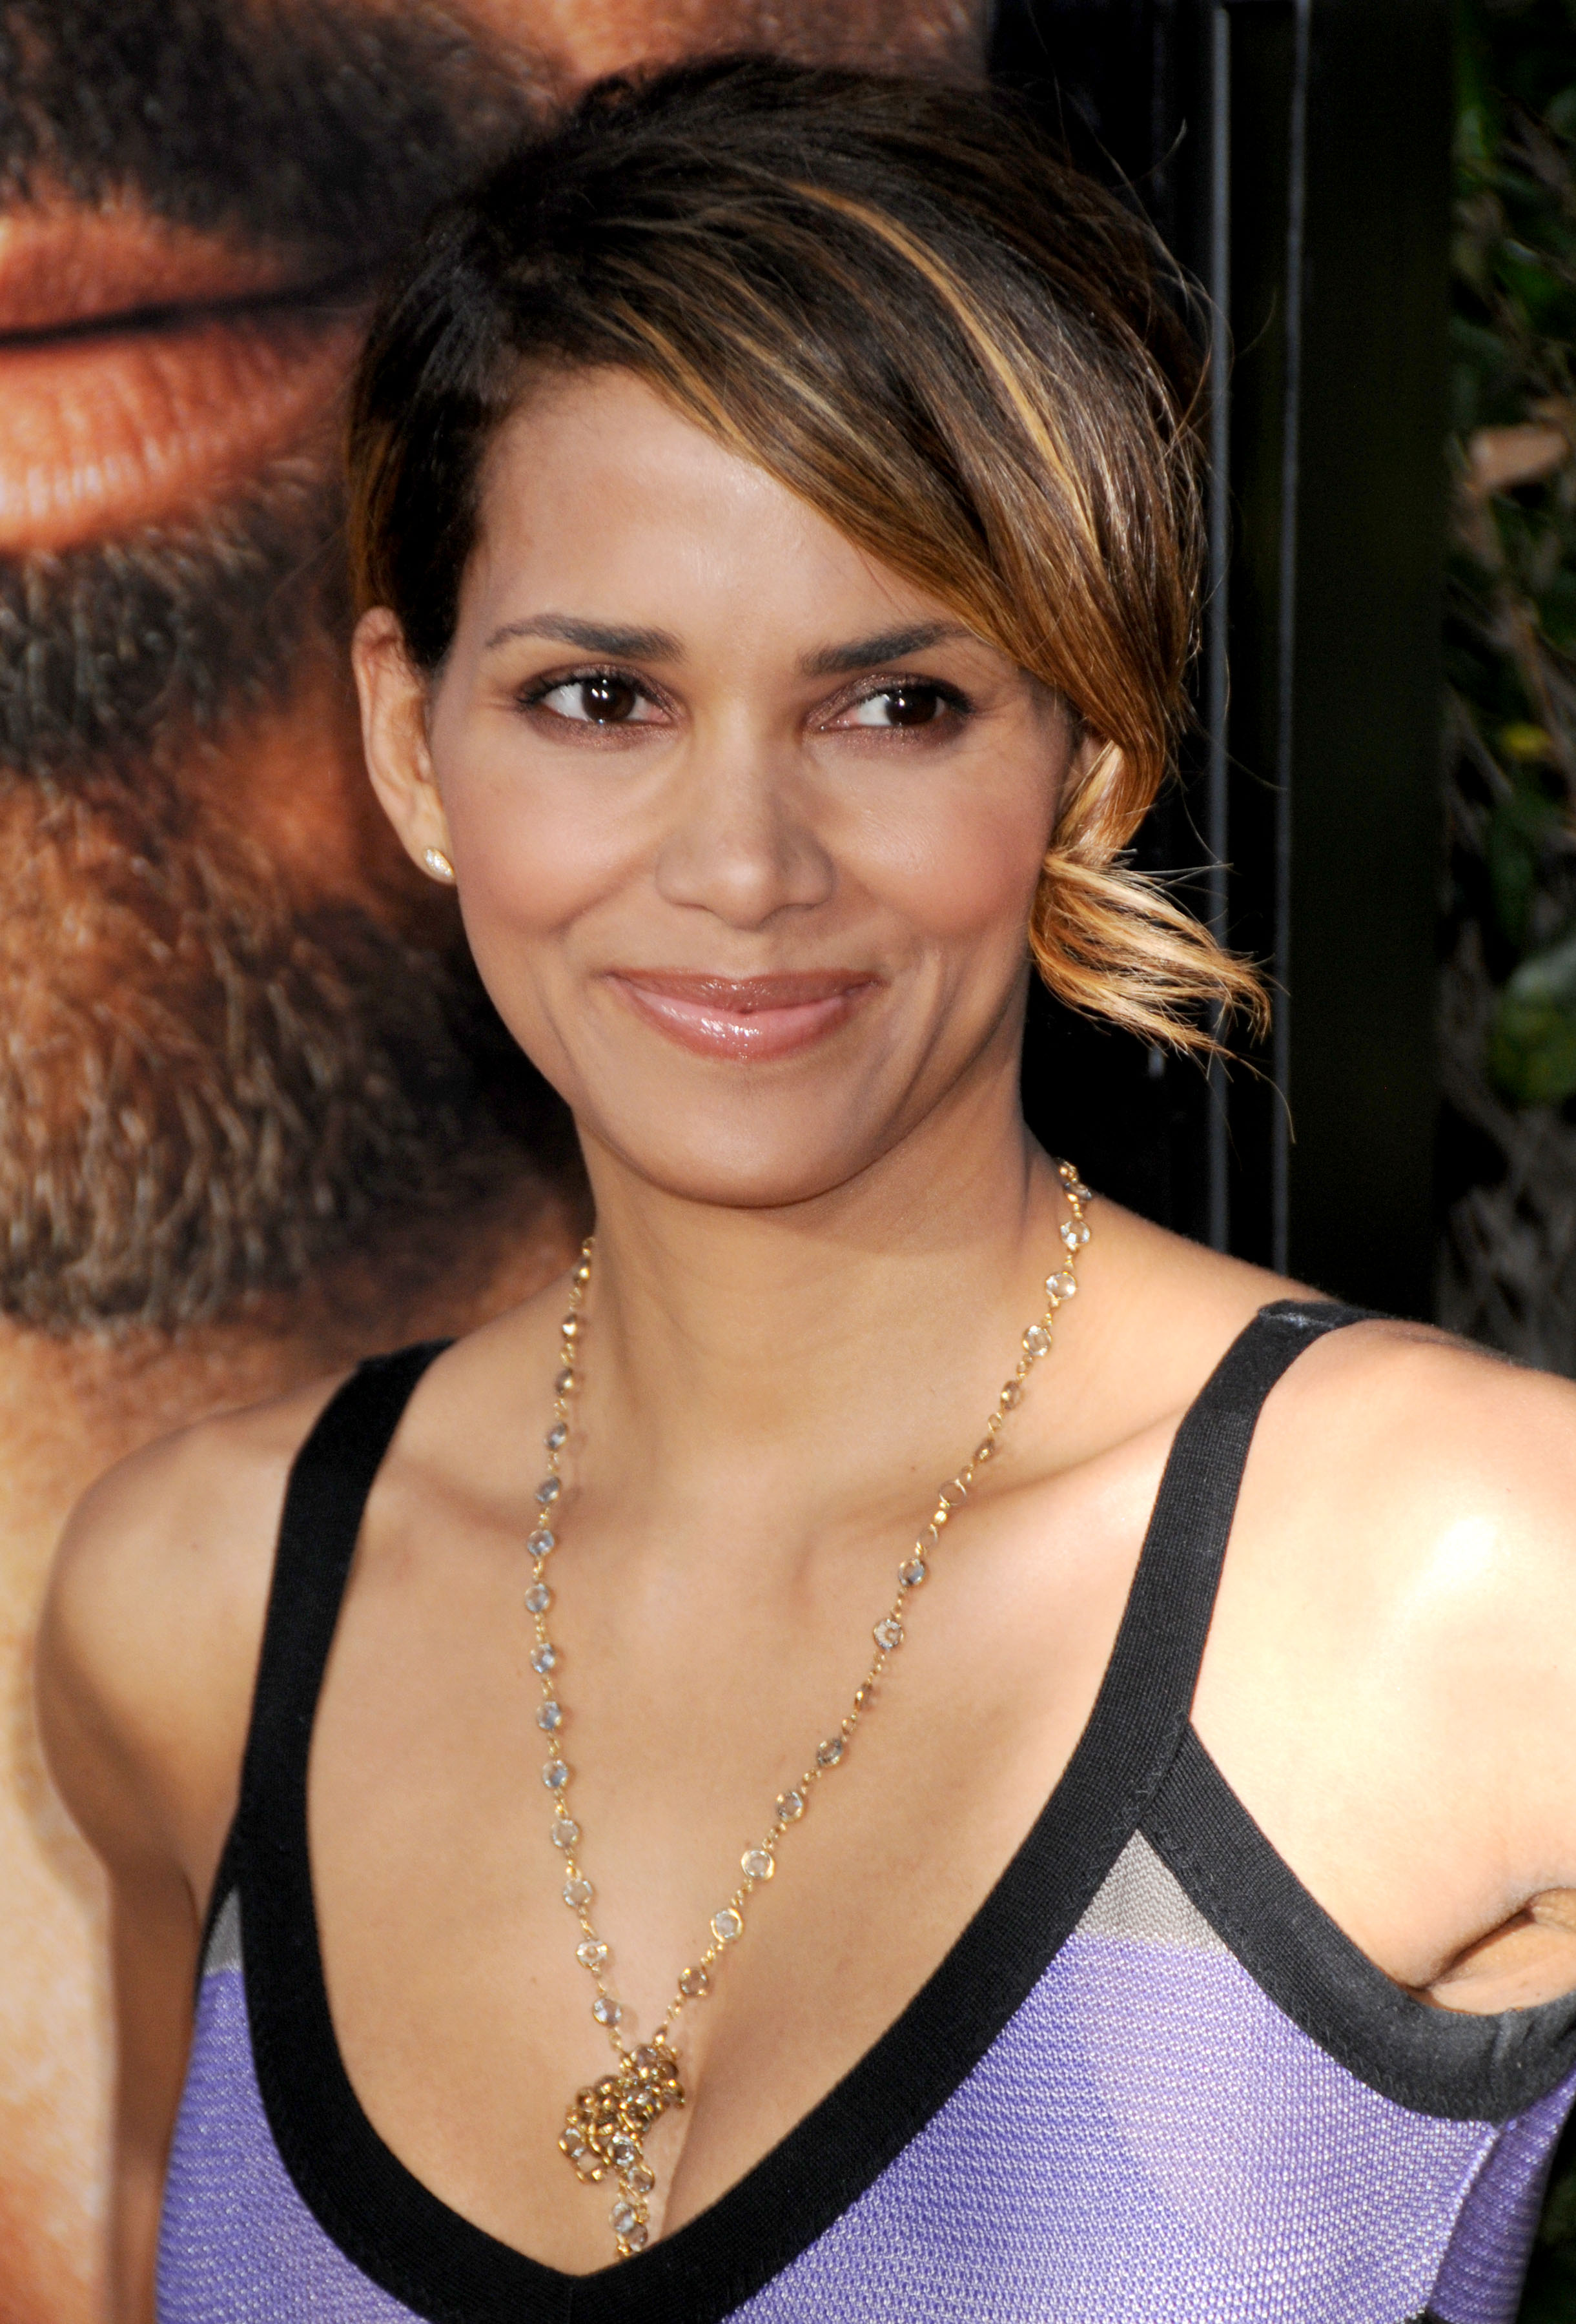 69427_Halle_Berry_The_Soloist_premiere_in_Los_Angeles_83_122_131lo.jpg